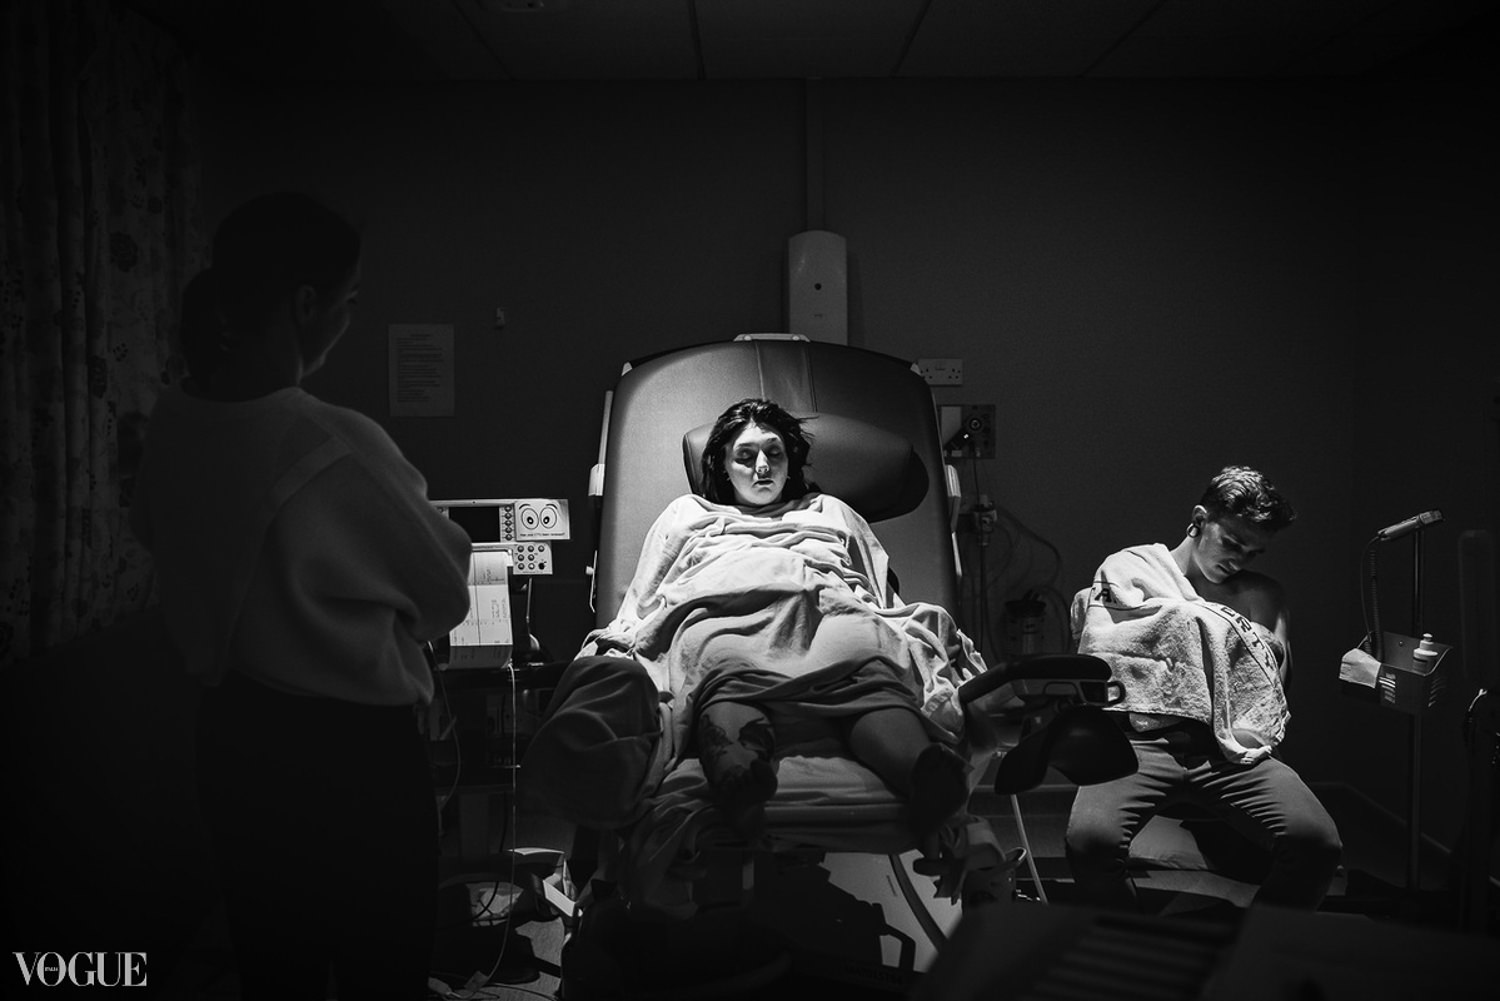 Black and white image of postpartum mother laying in hospital sleeping, whilst her mother watches over her and baby is cradled by daddy. As featured on Vogue Italia.